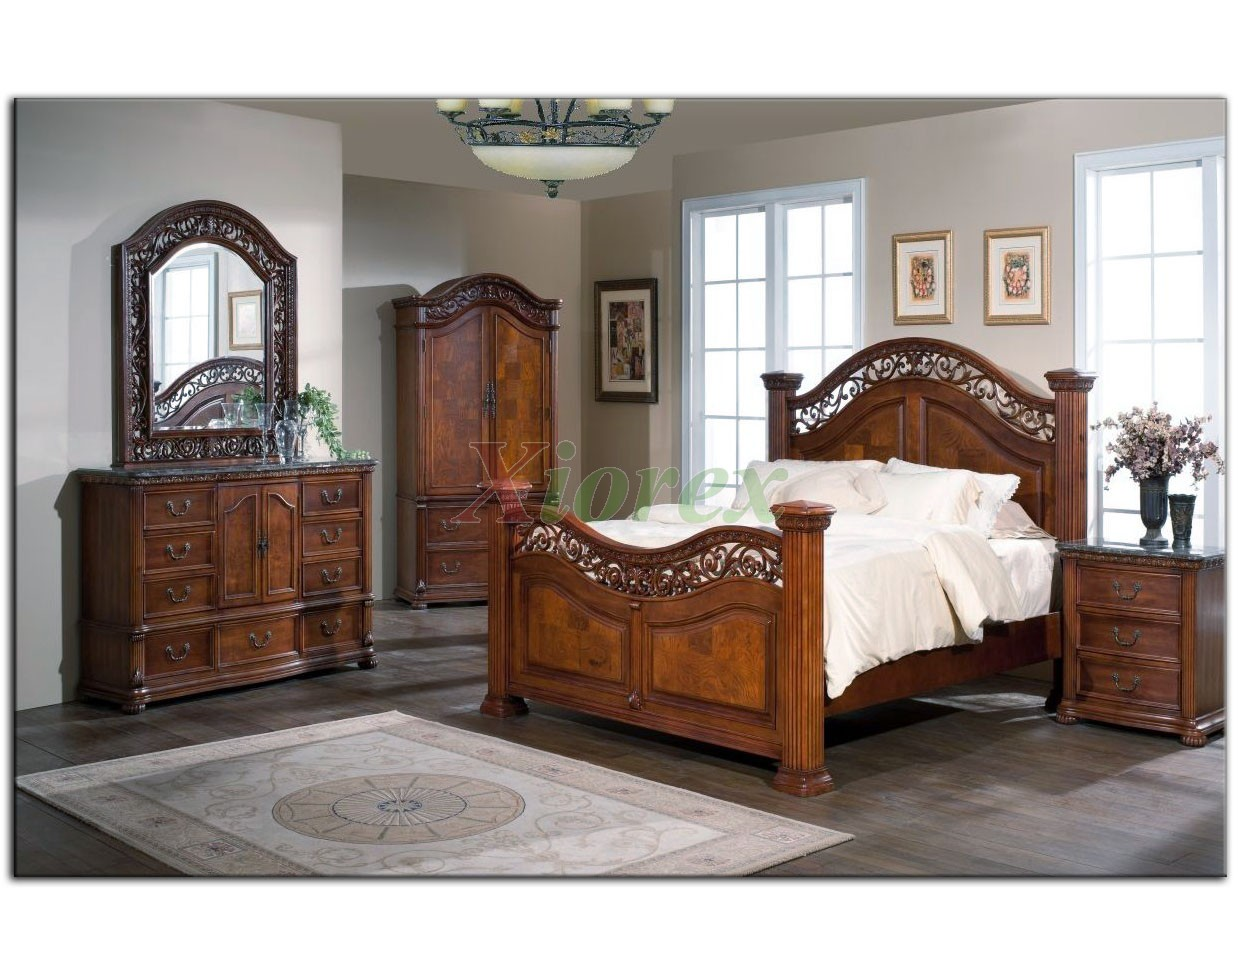 Bedroom Set Furniture ~ Poster bedroom furniture set xiorex